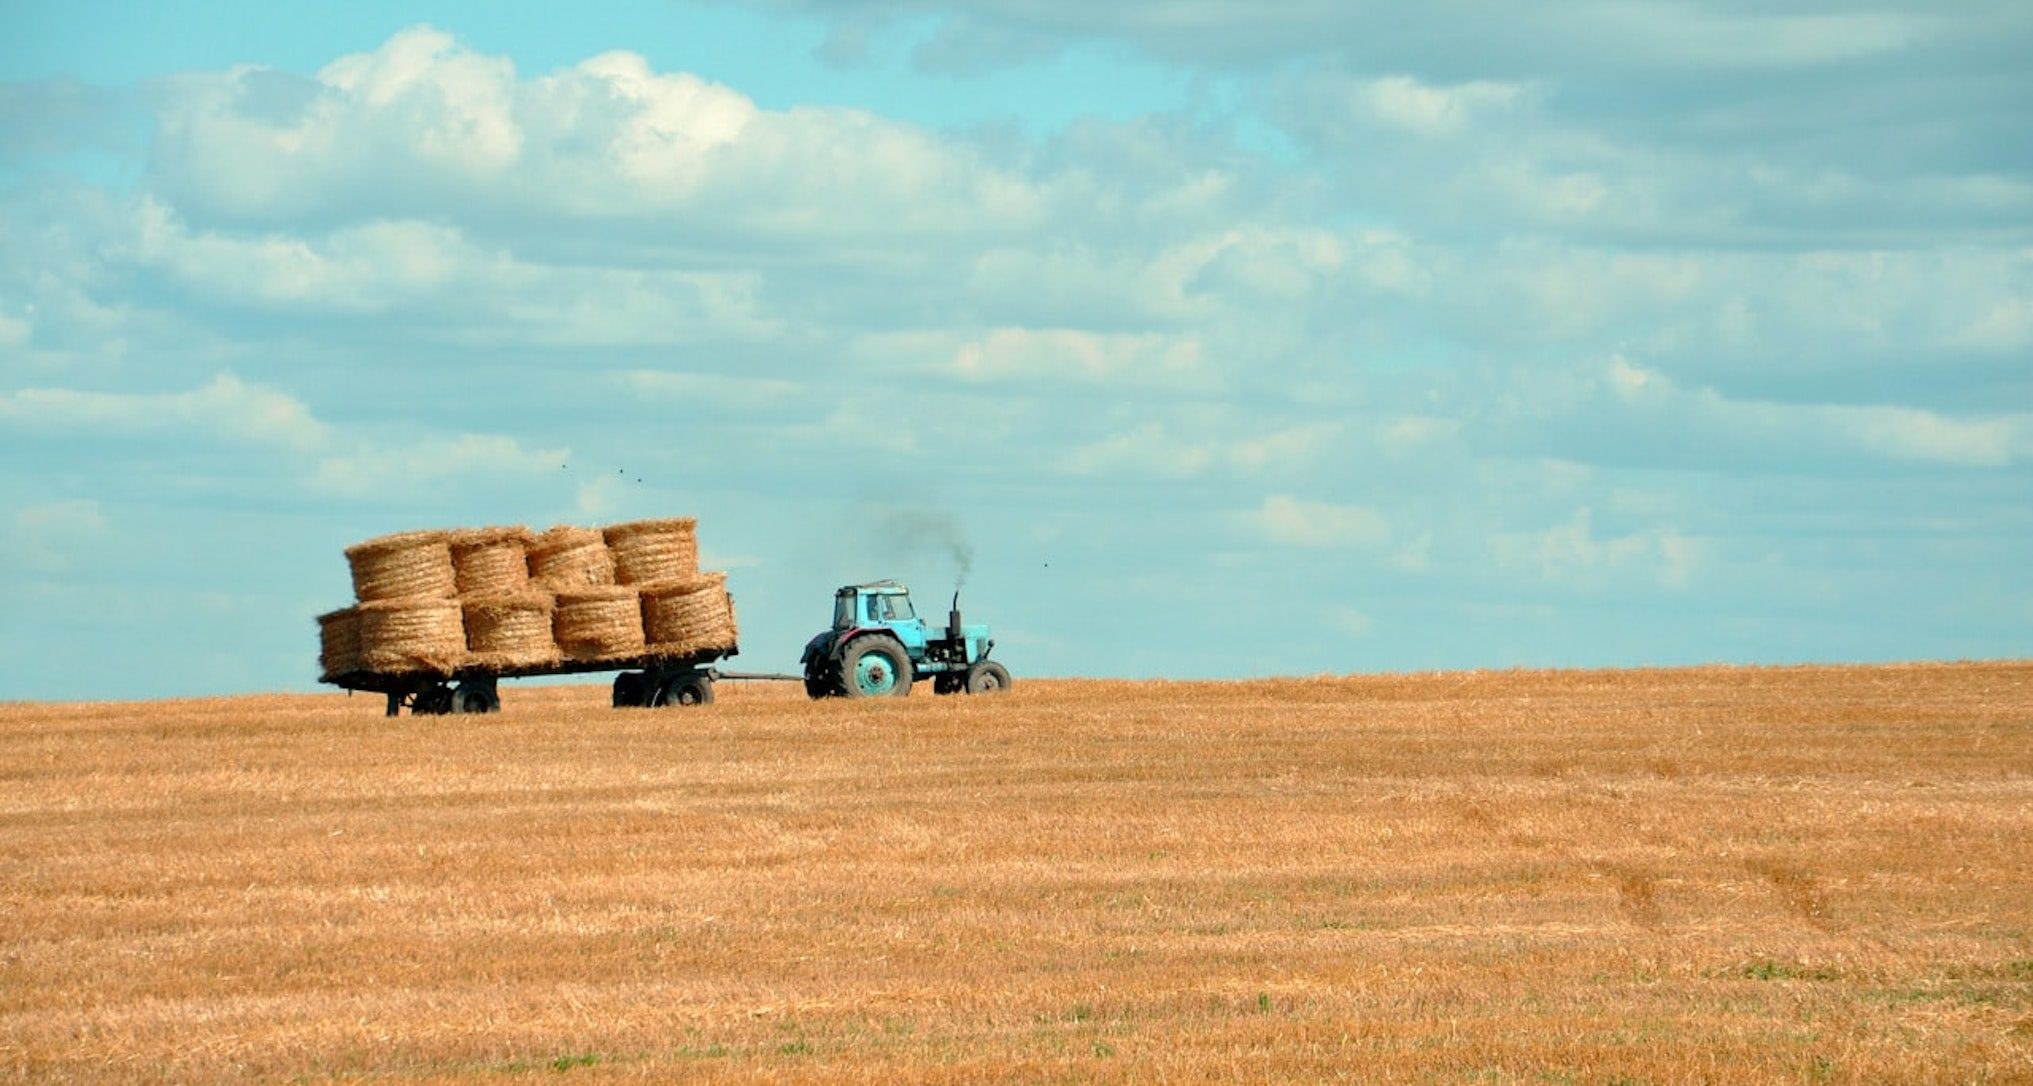 tractor in field towing bales of hay